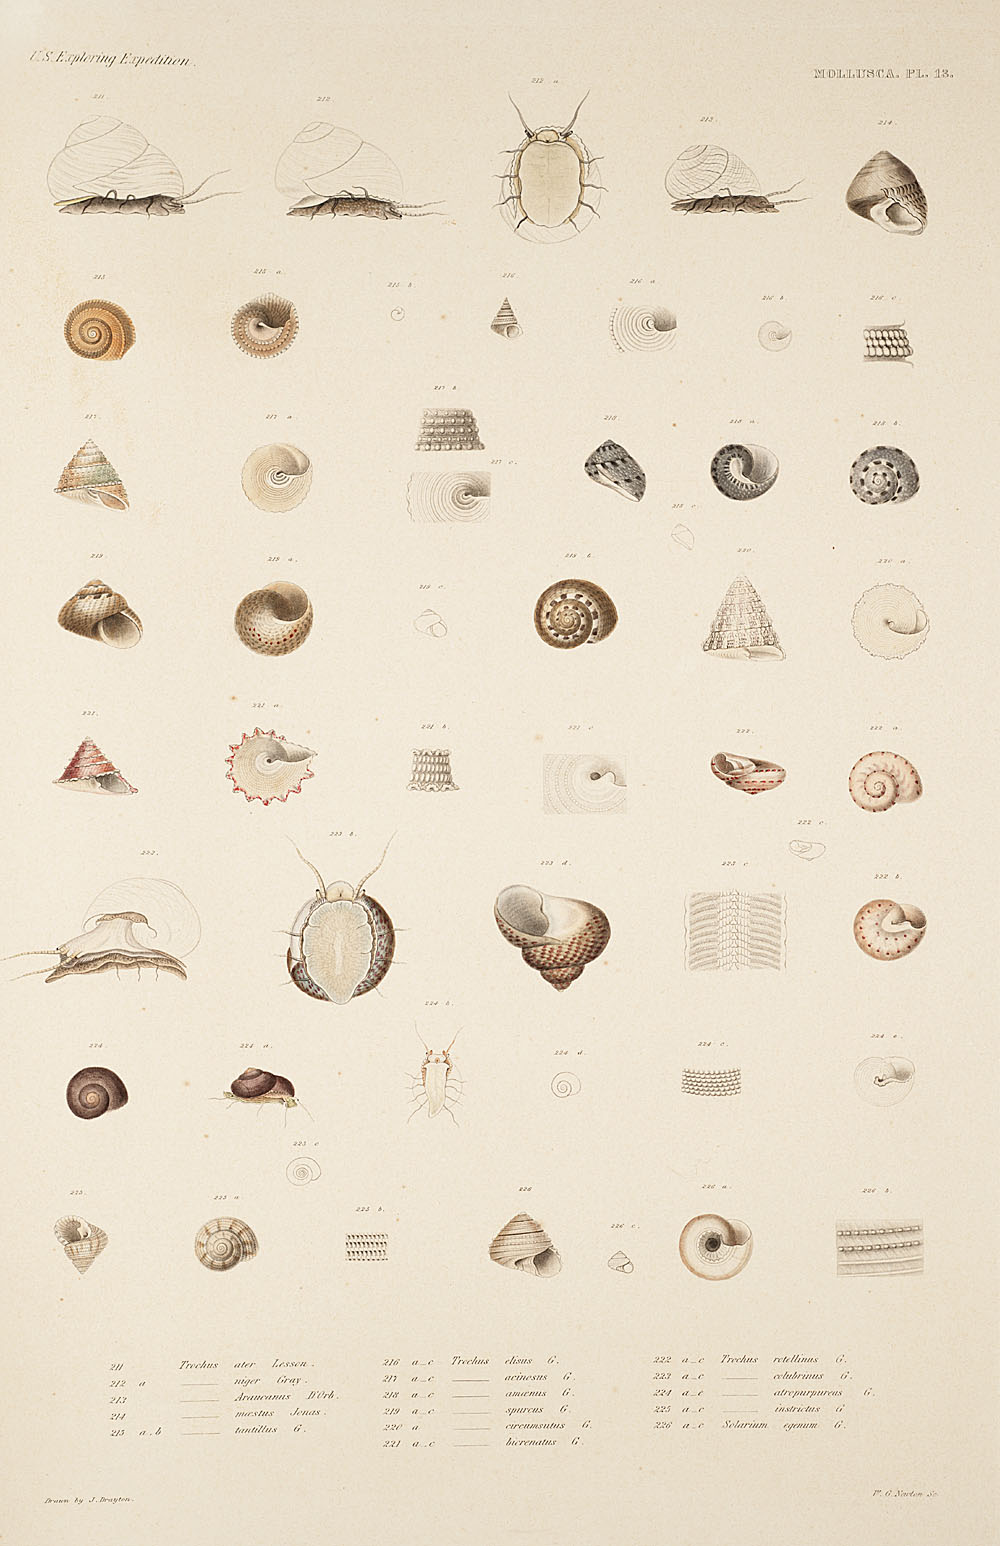 Mollusca, Pl. 13,  Image number:sil19-18-047b